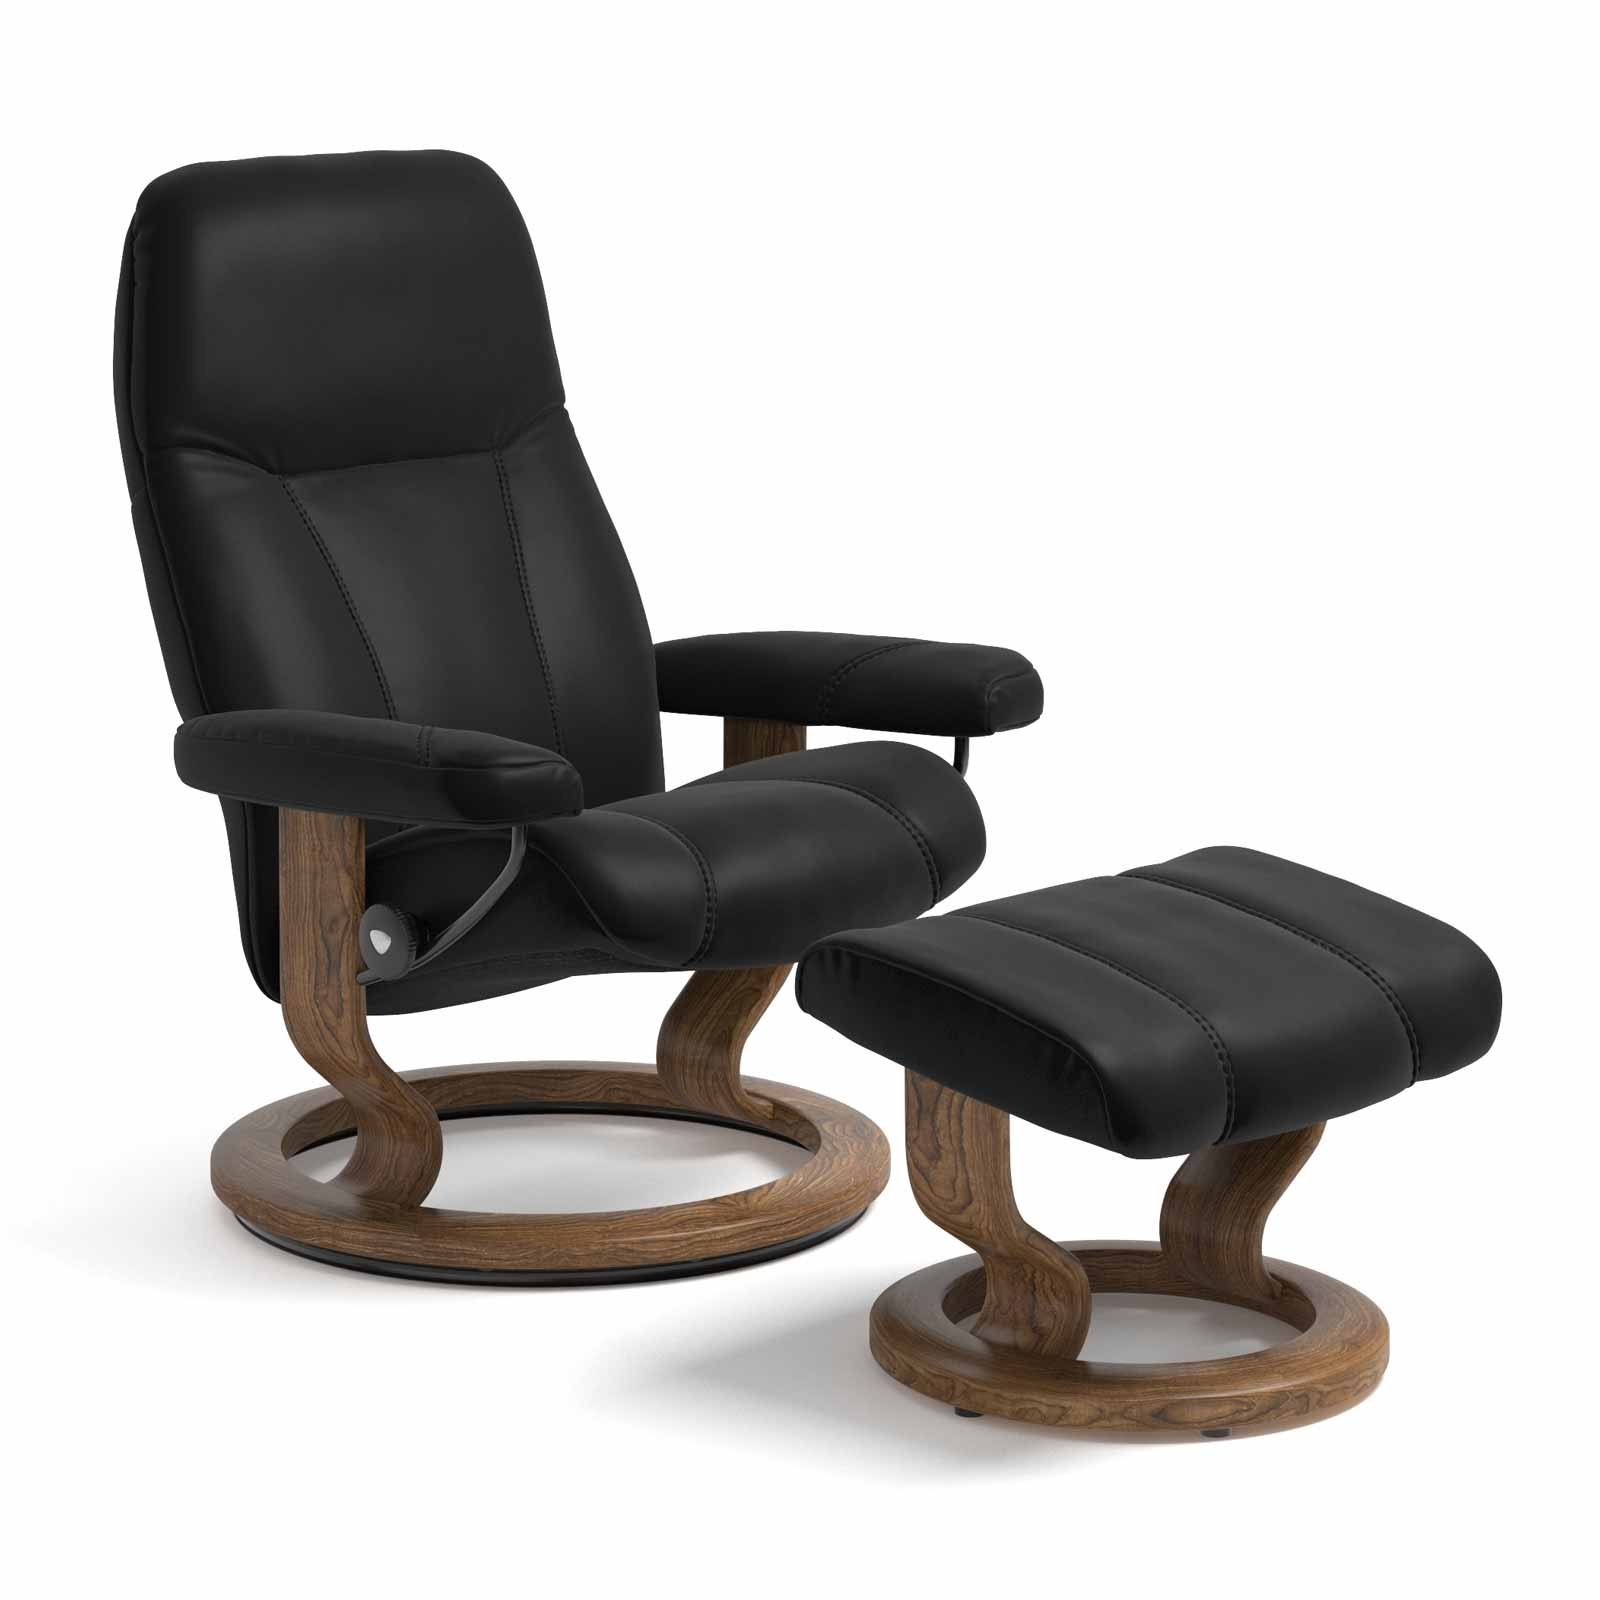 Stressless Sessel Berlin Stressless Sessel Consul Batick Schwarz Hocker Stressless